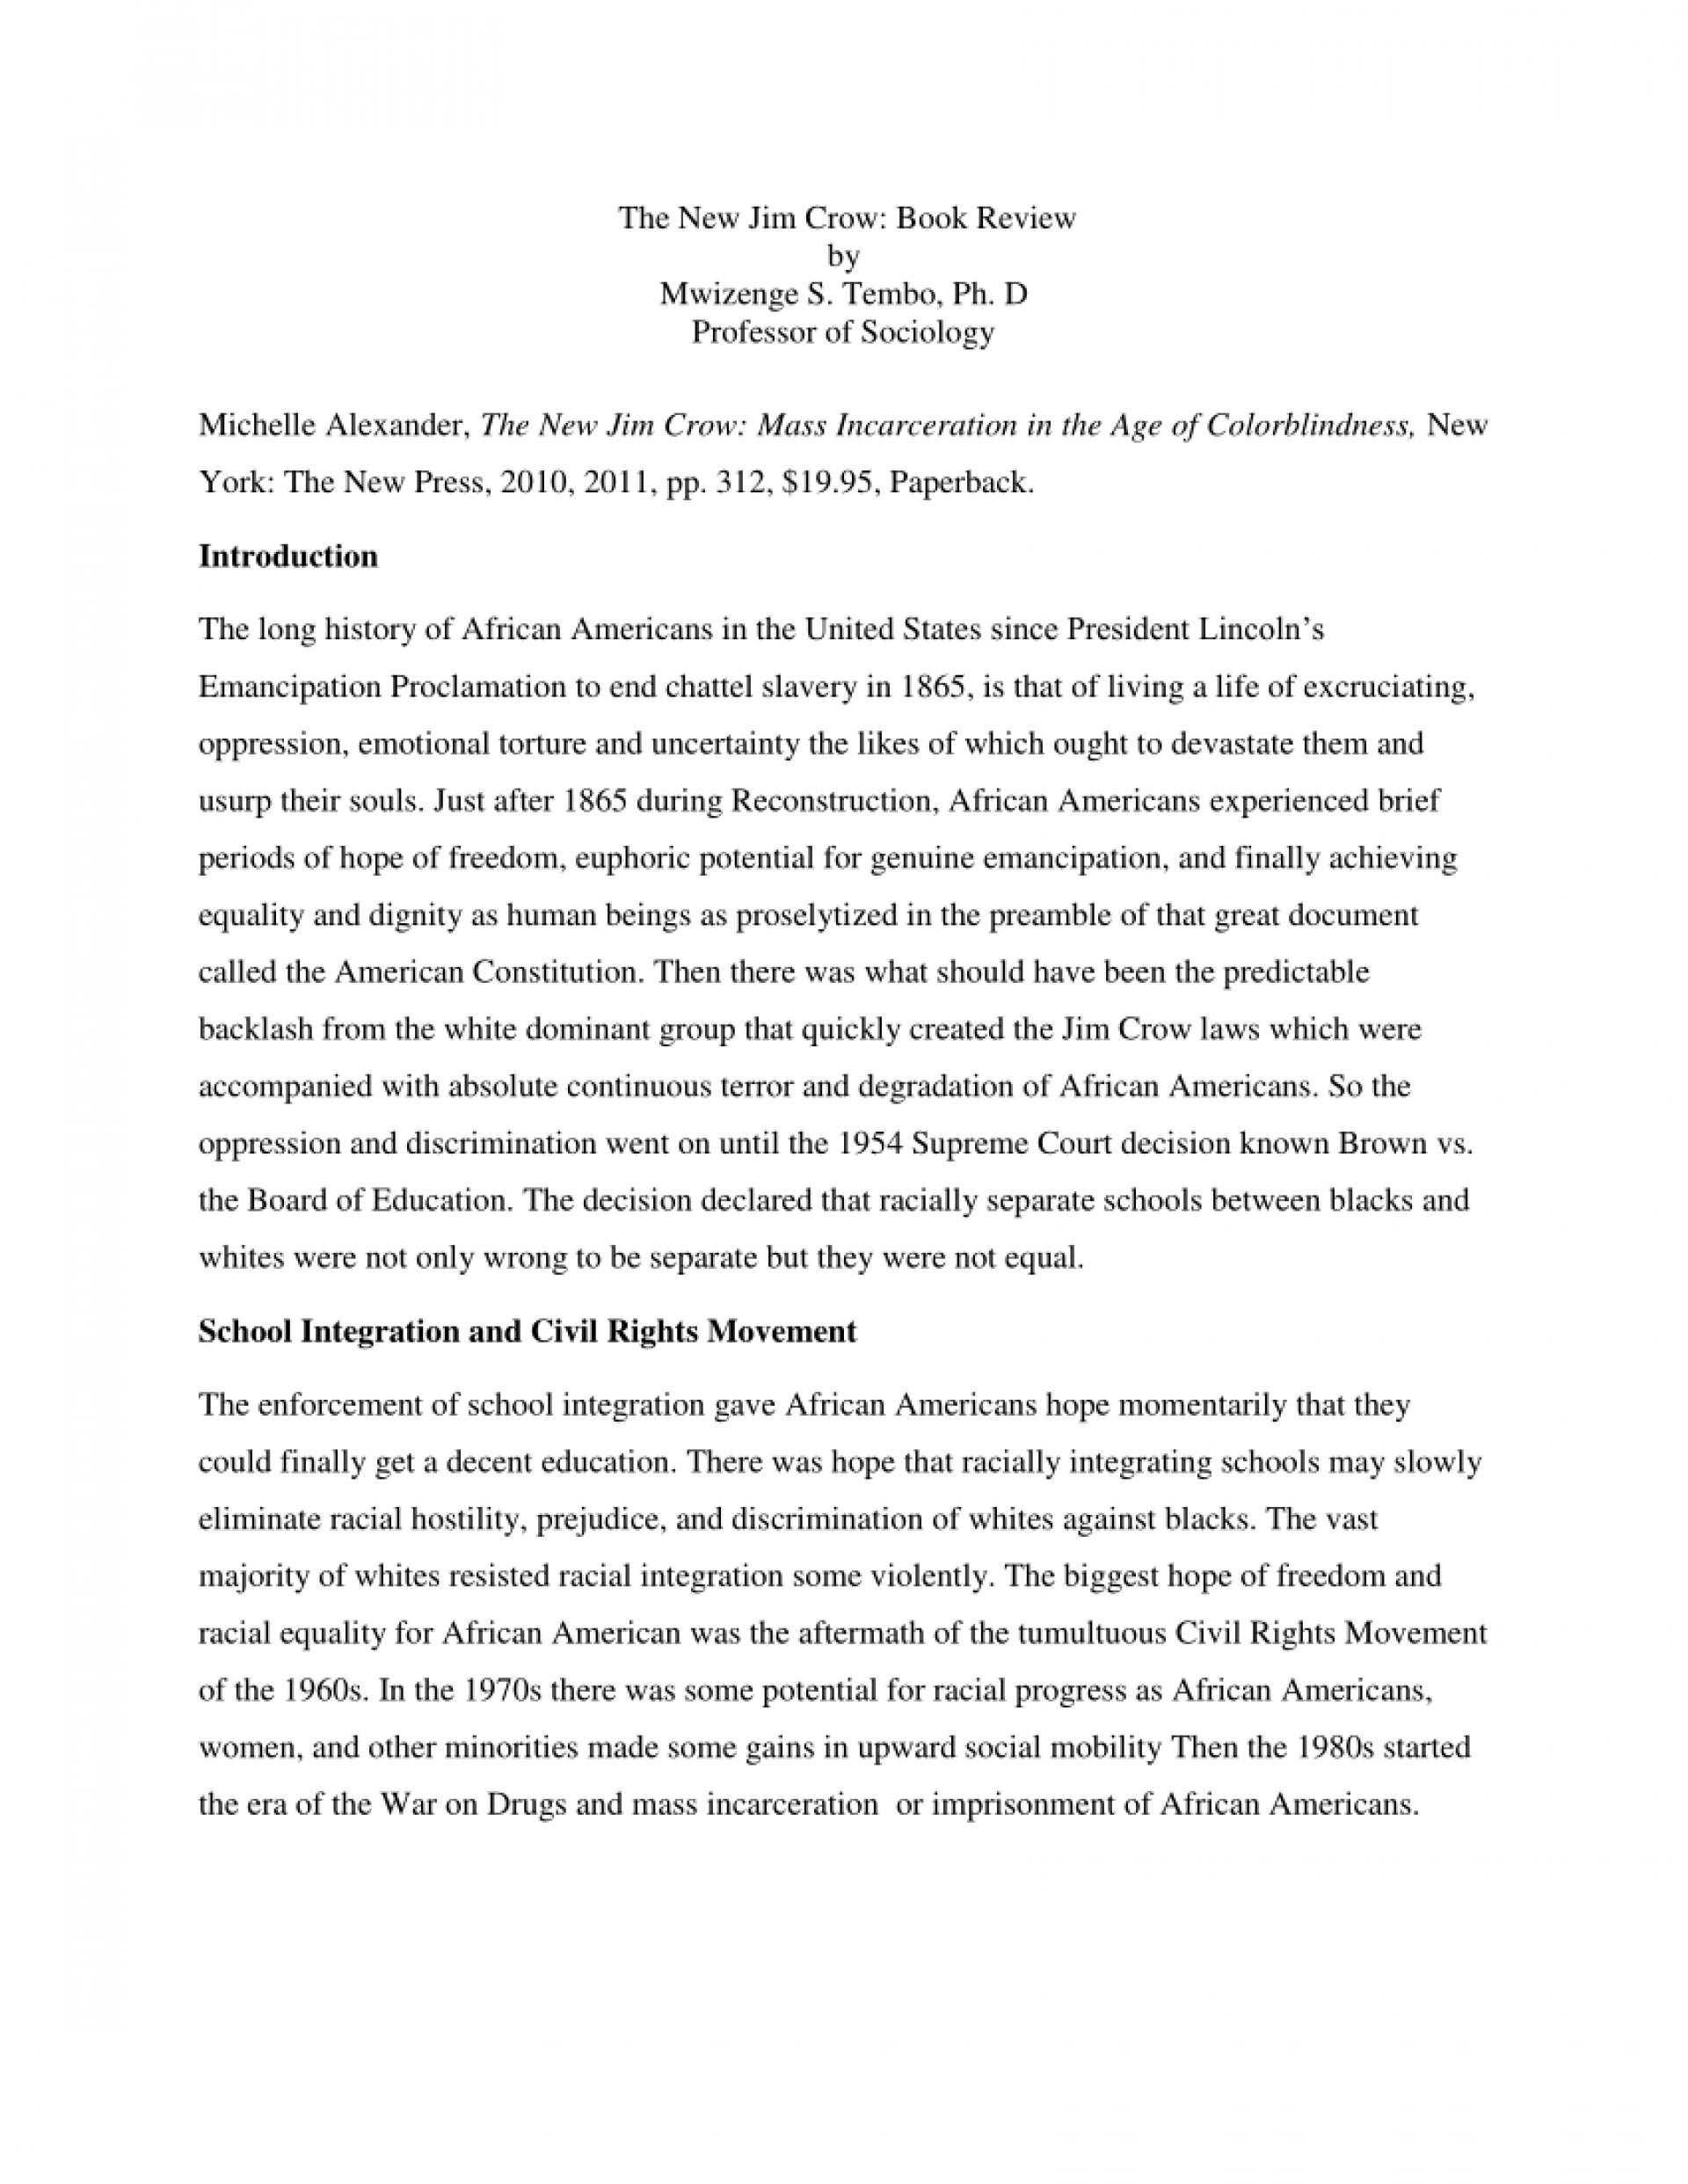 017 Example Of Result And Discussion In Research Paper Pdf Jim Crow Laws Essay Topics The New Book Review Writing Prompt Titles Fearsome 1920